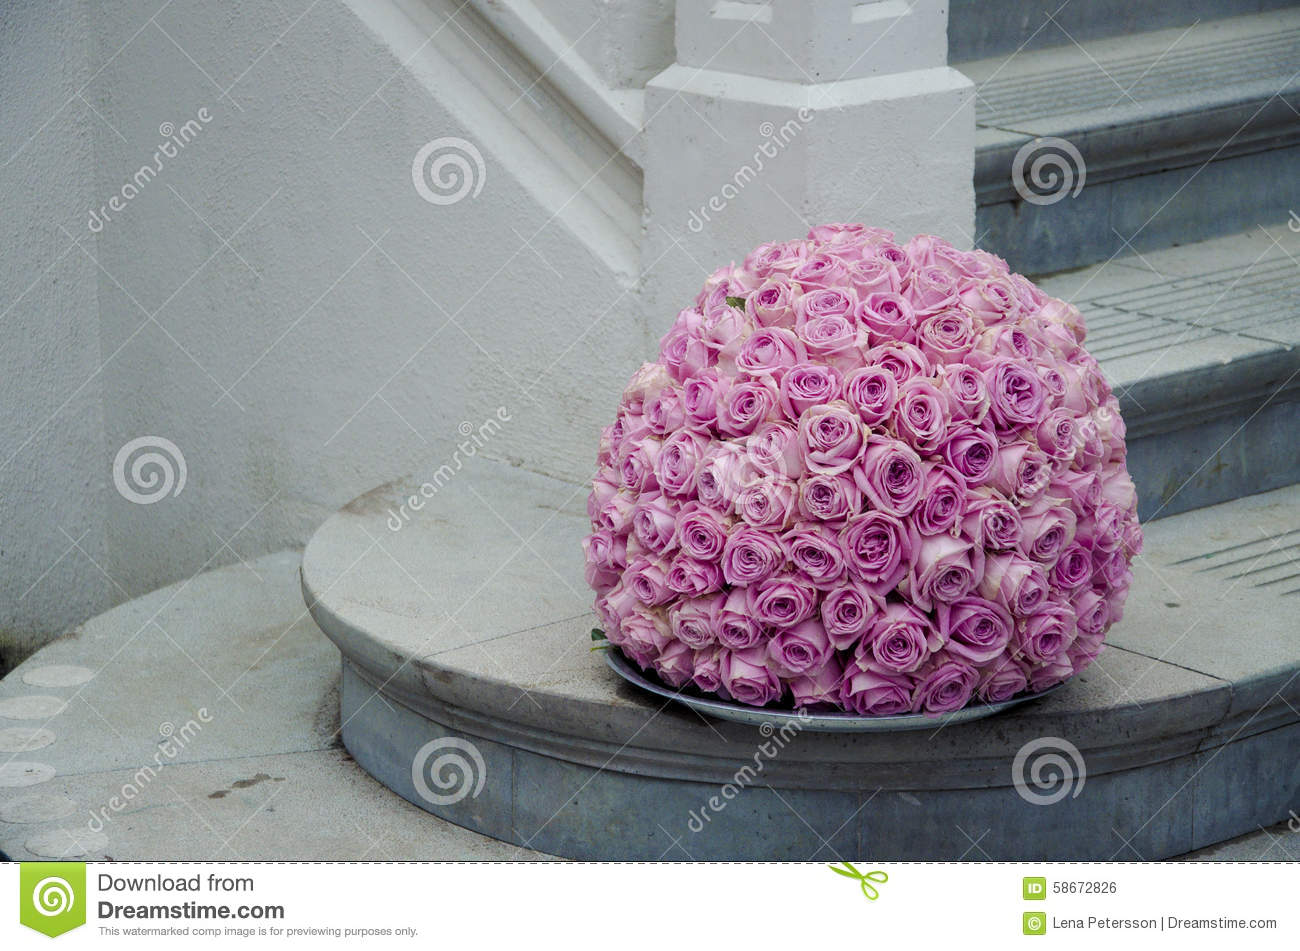 Pink Roses Centerpiece Flower Ball Stock Photo - Image of wall ...